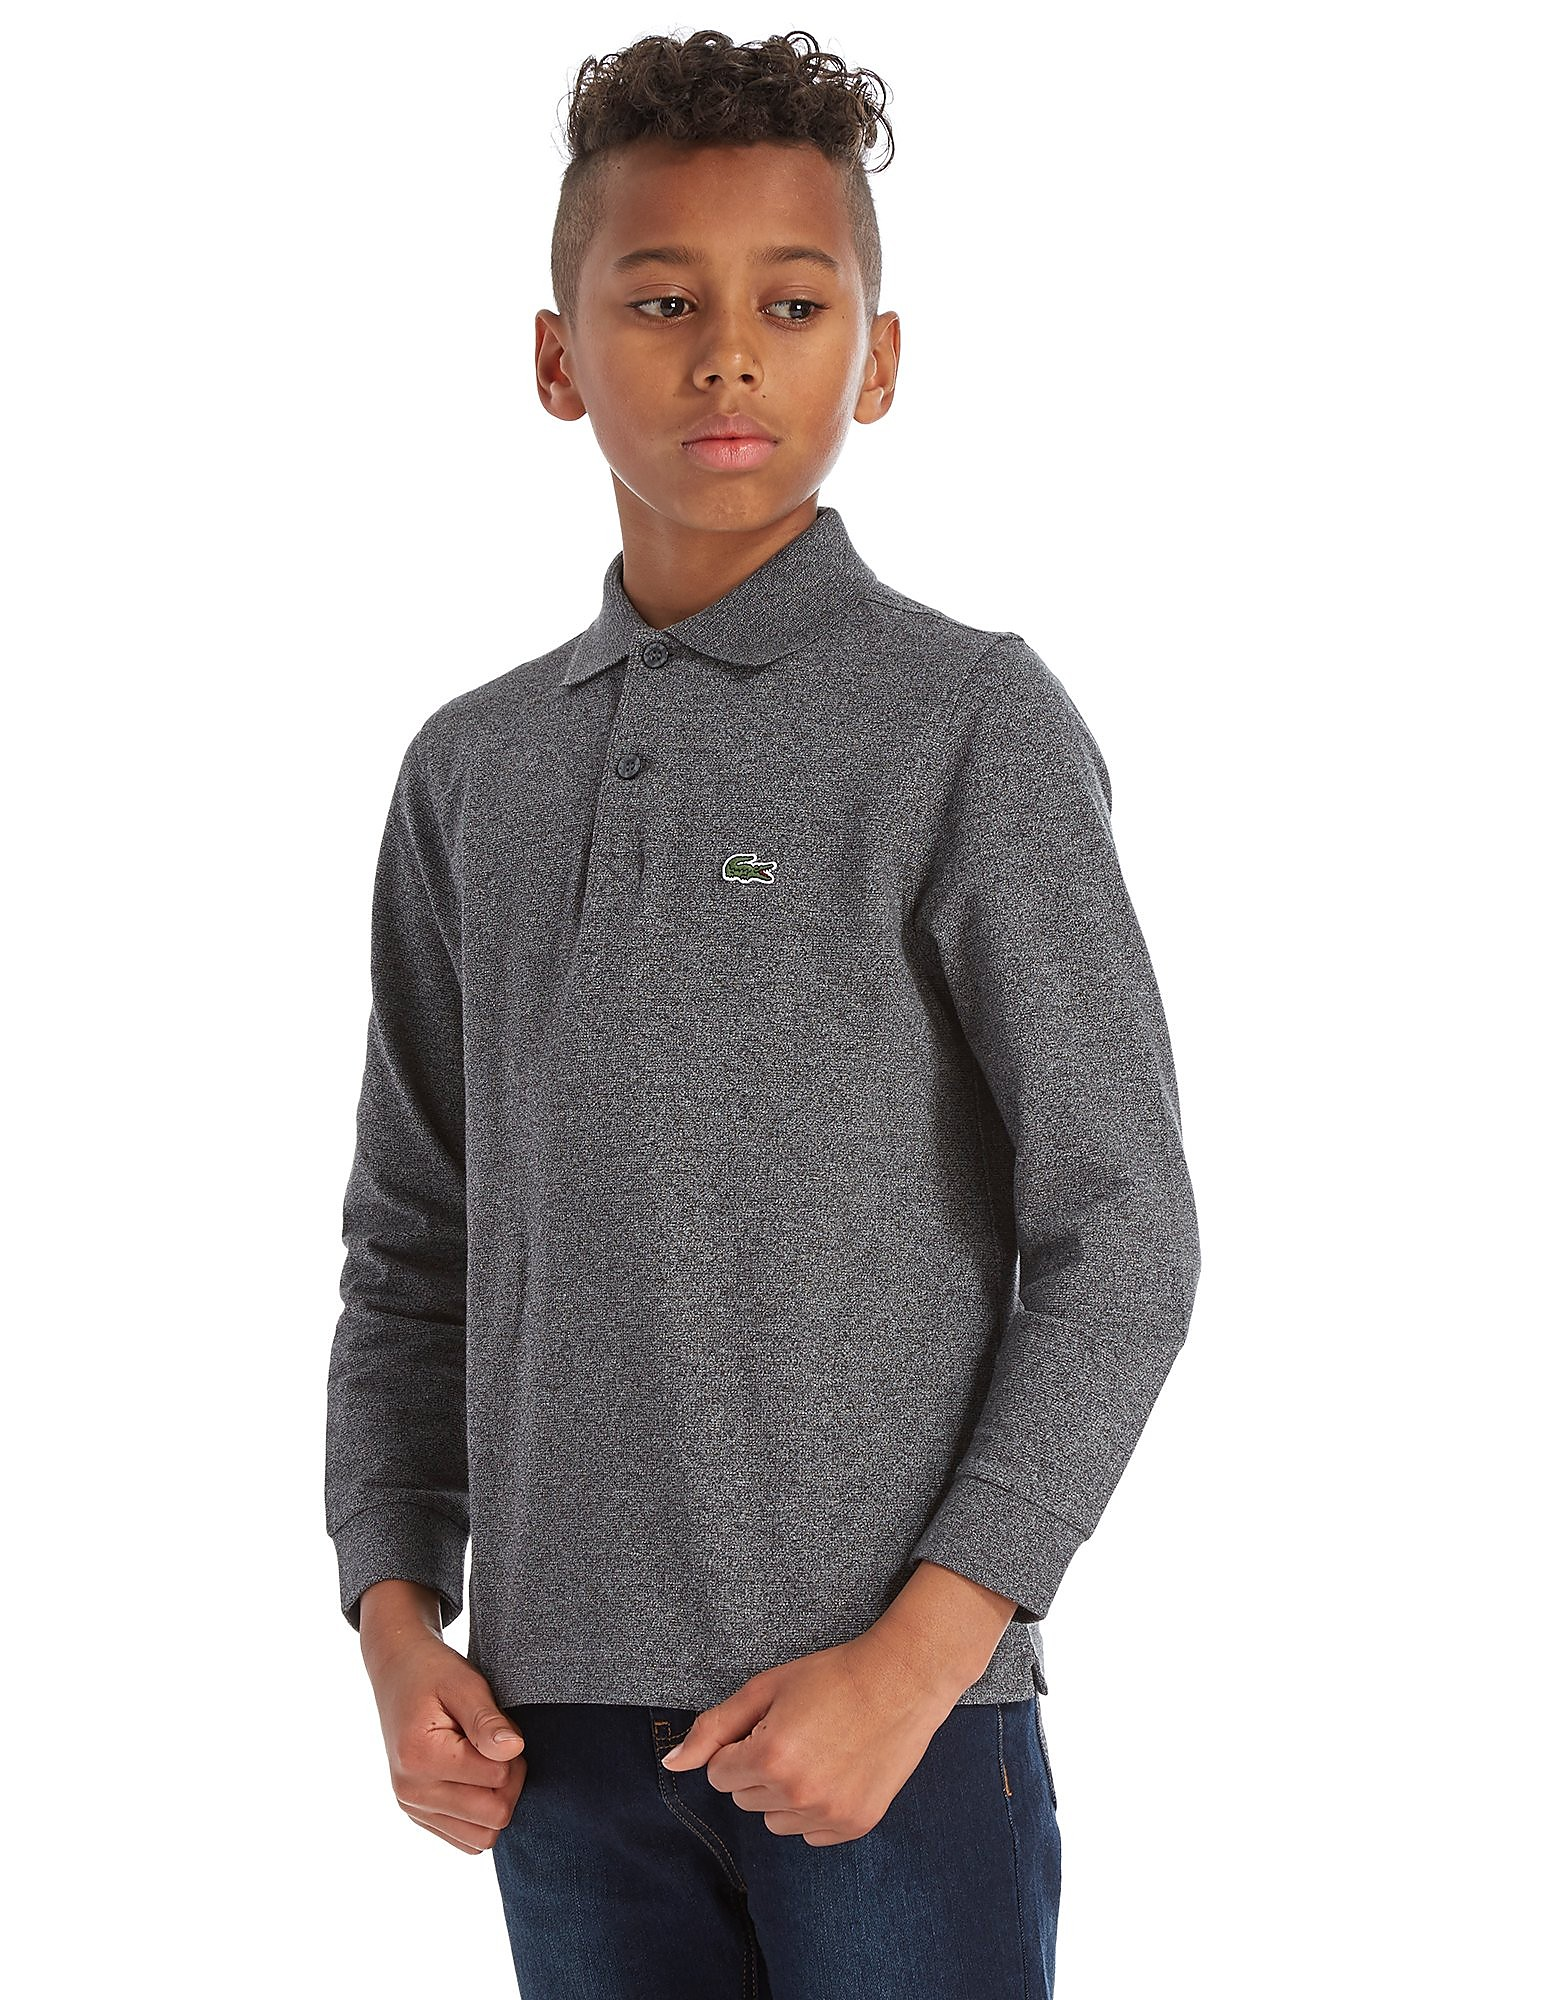 Lacoste Long Sleeve Sport Polo Shirt Junior - Grijs - Kind